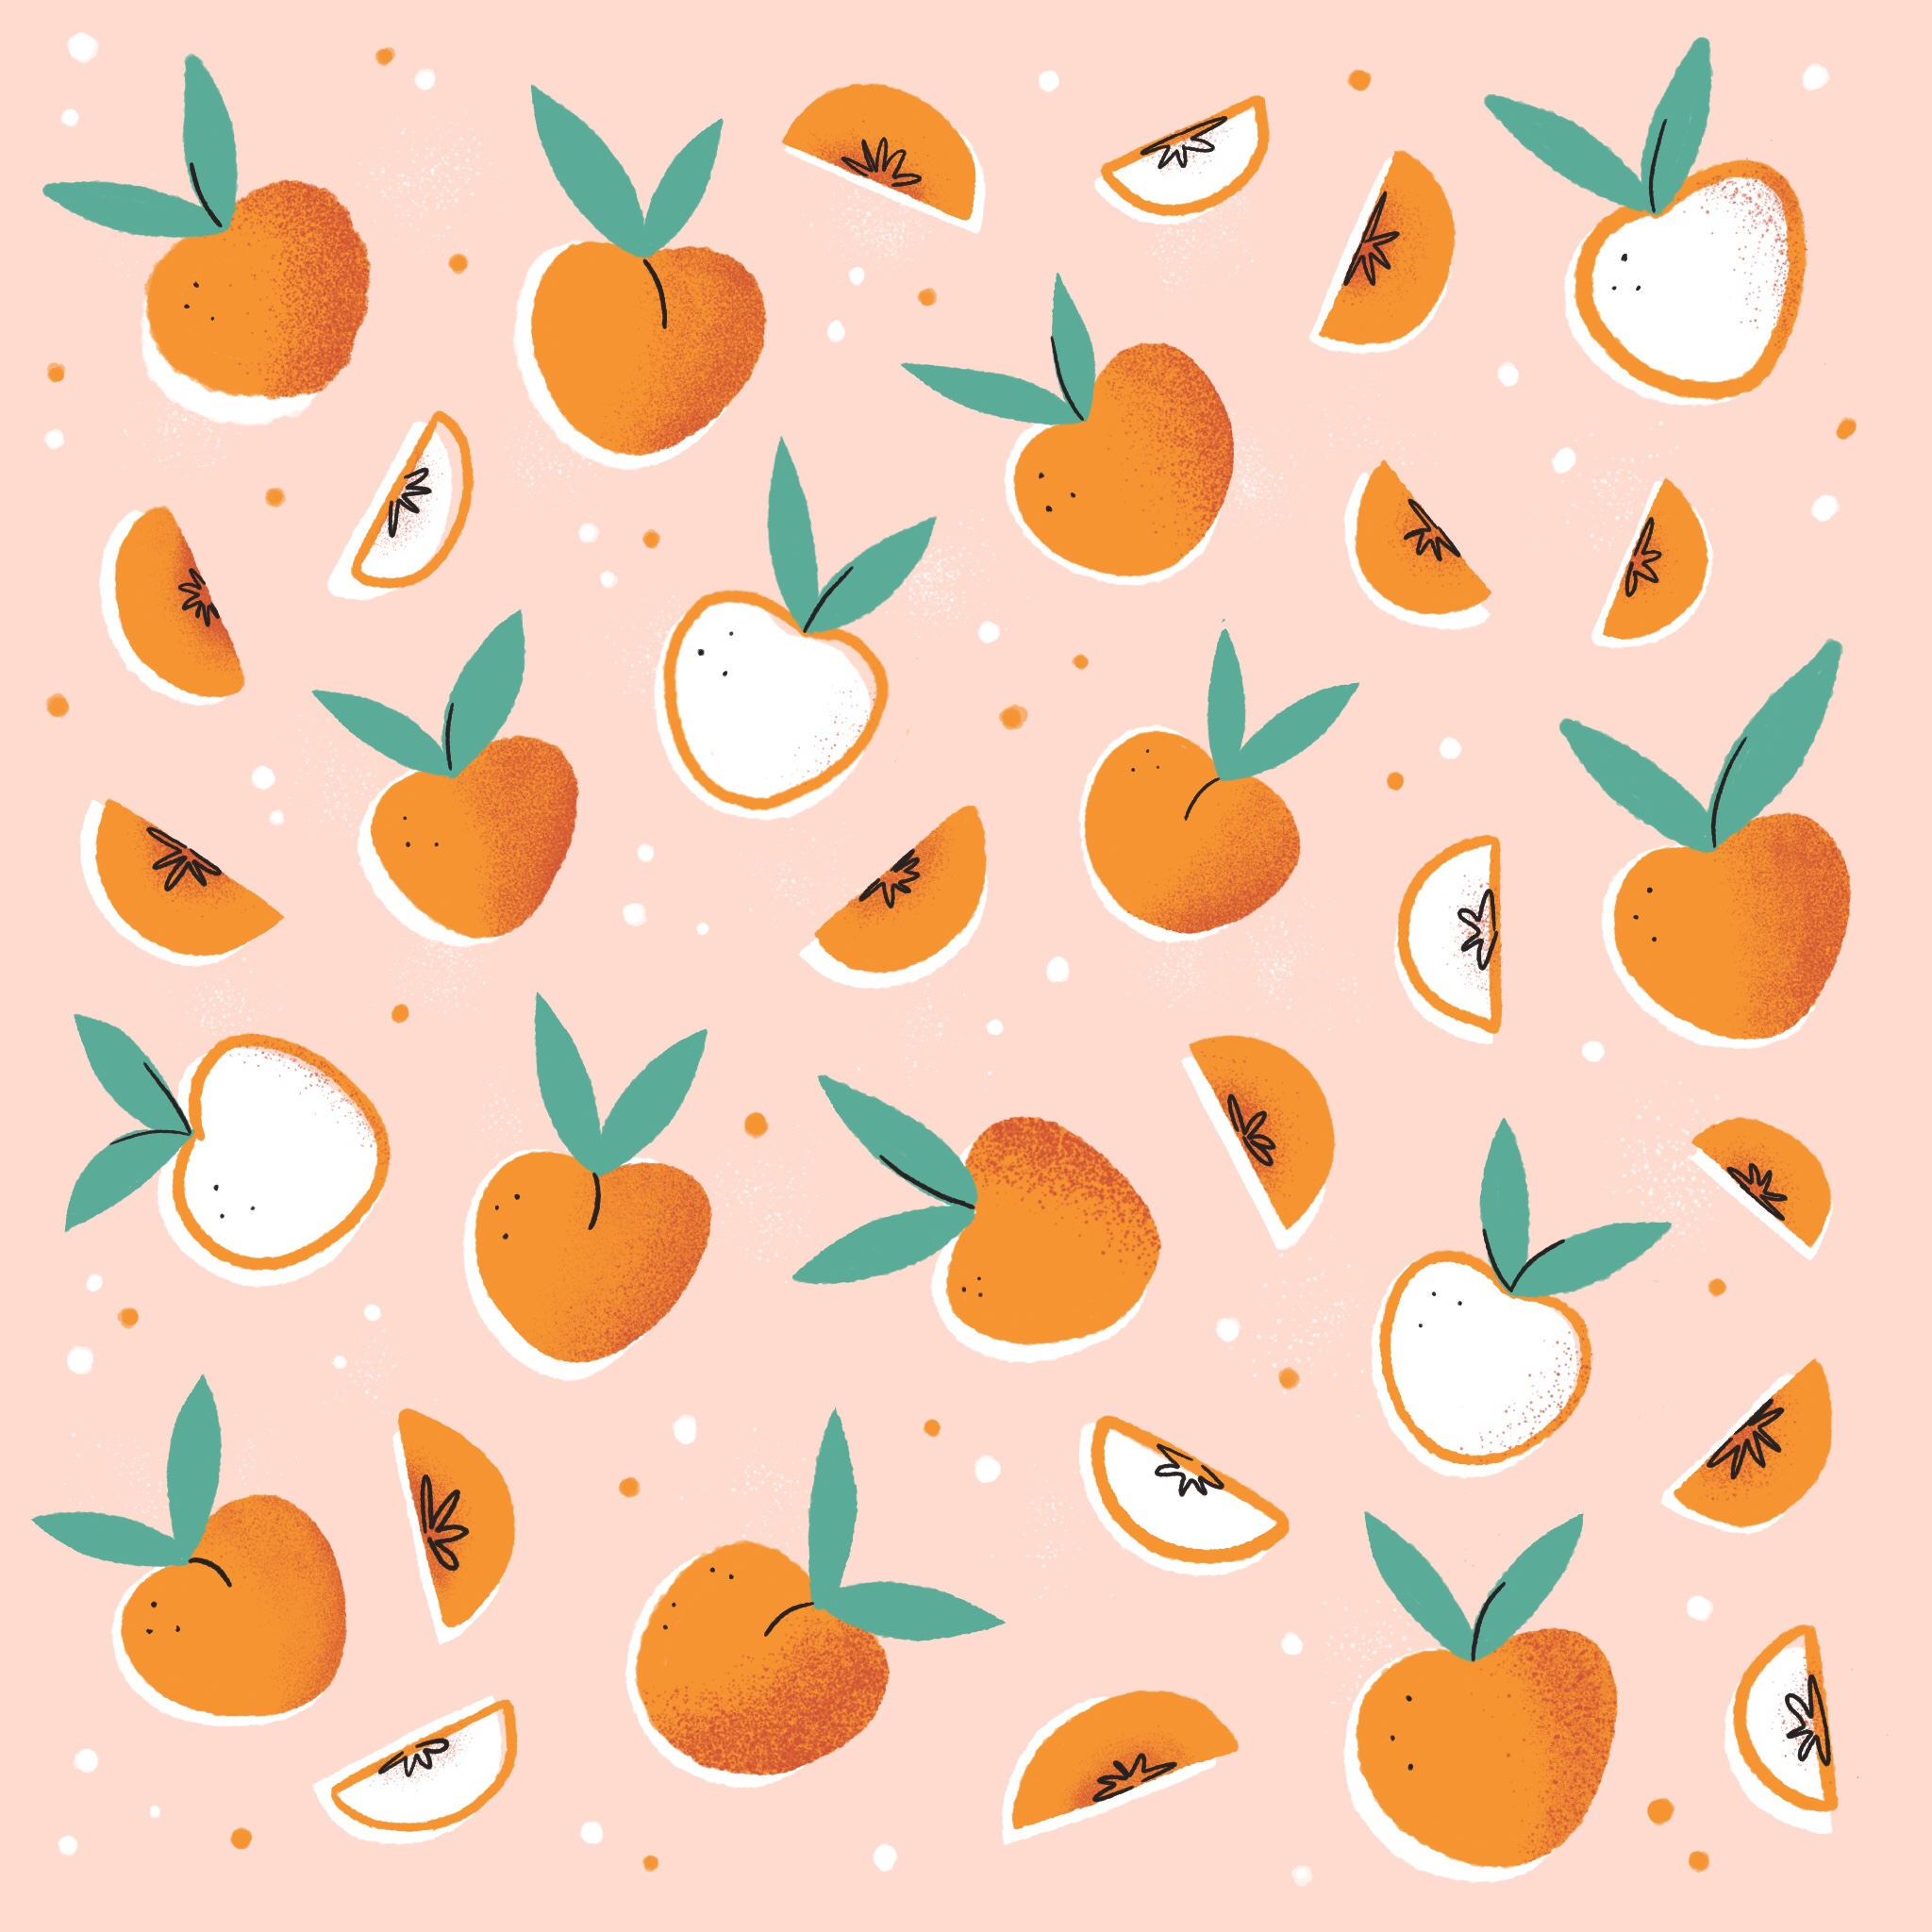 An illustrated pattern of peaches